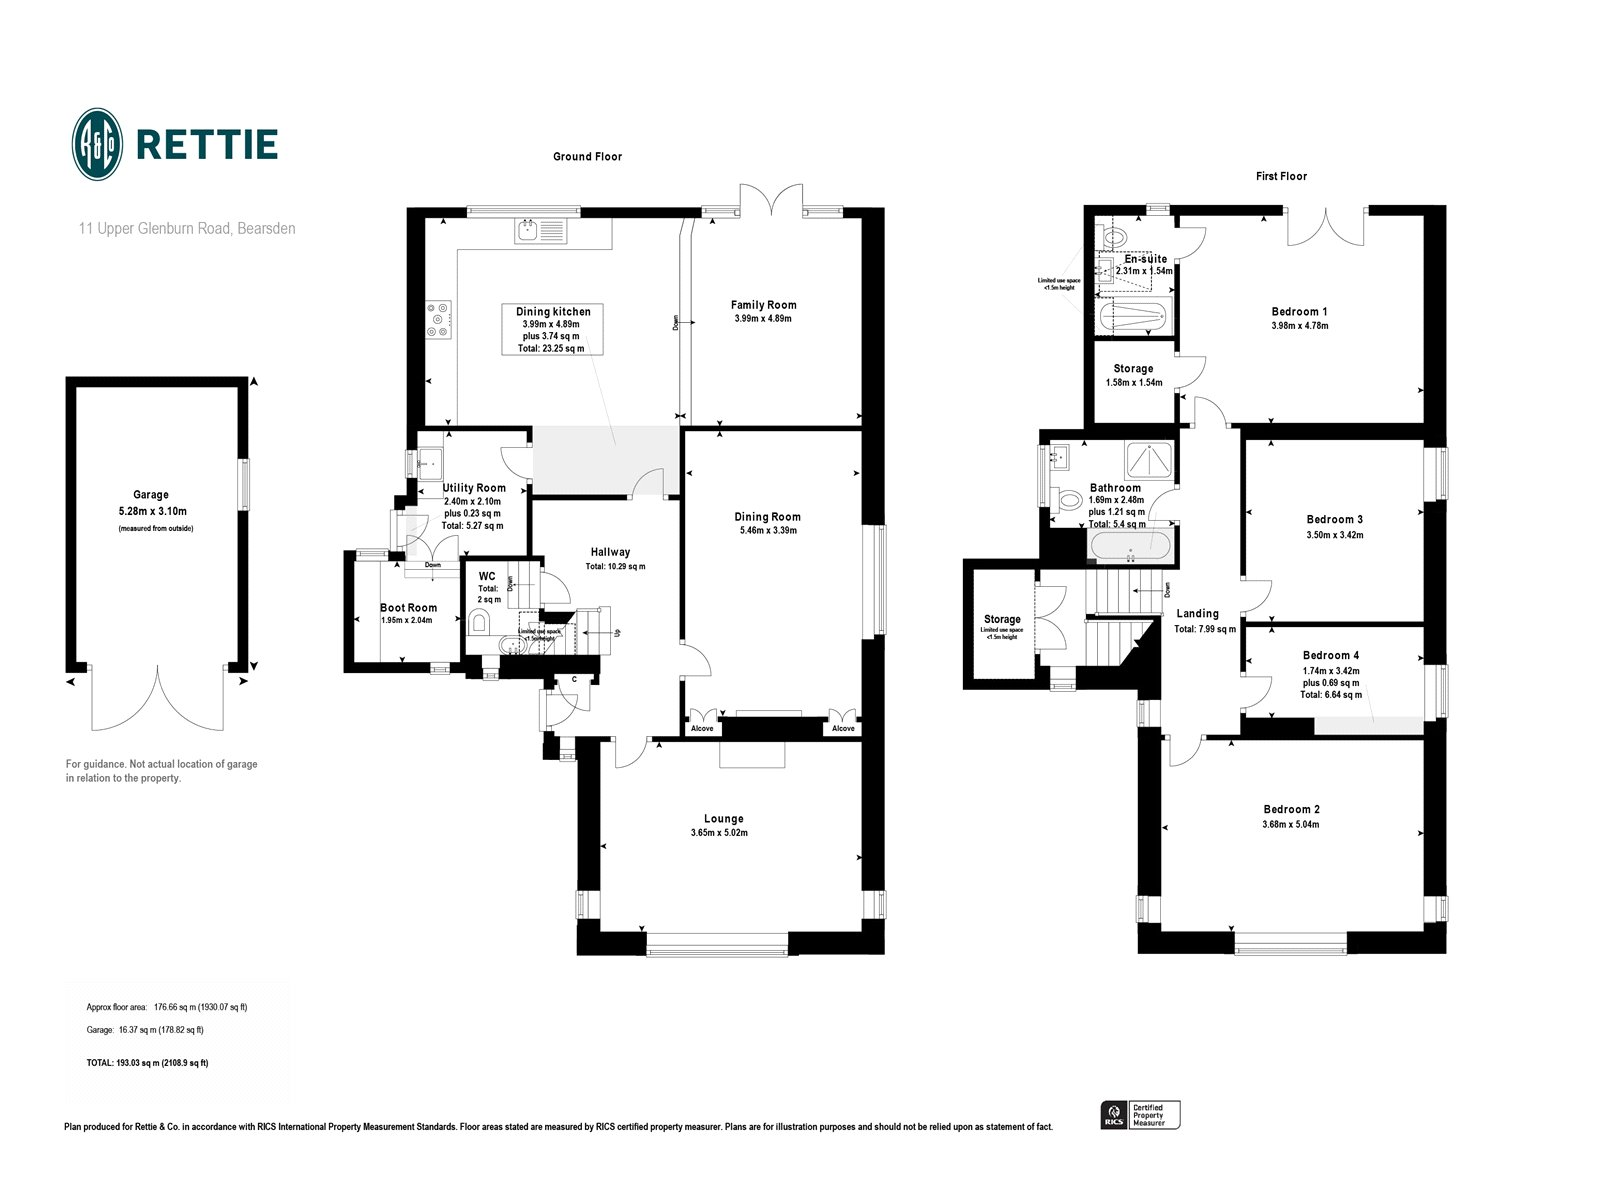 Floorplans for Upper Glenburn Road, Bearsden, Glasgow, G61